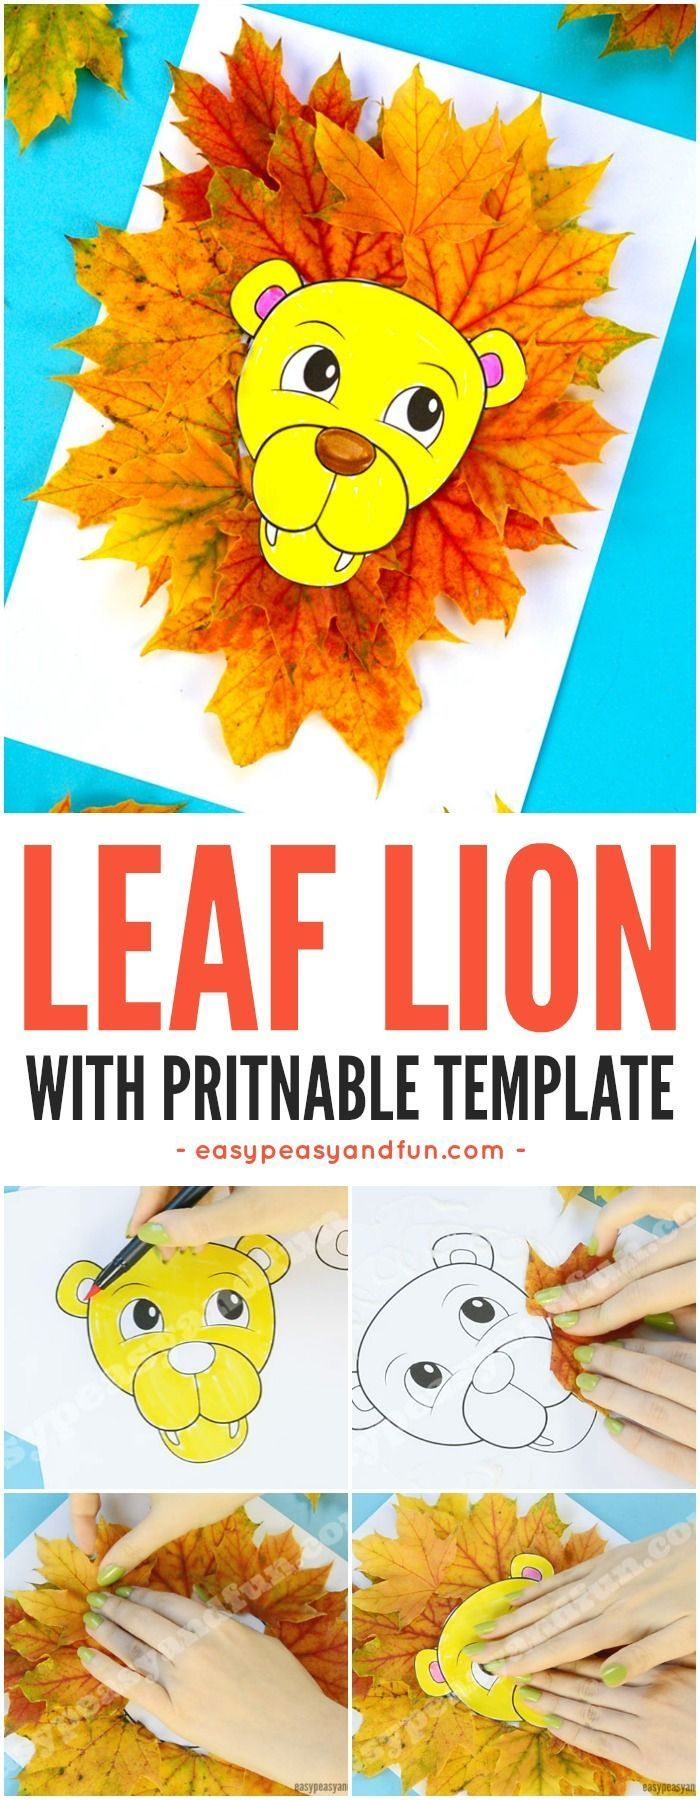 Gorgeous image with regard to printable fall crafts